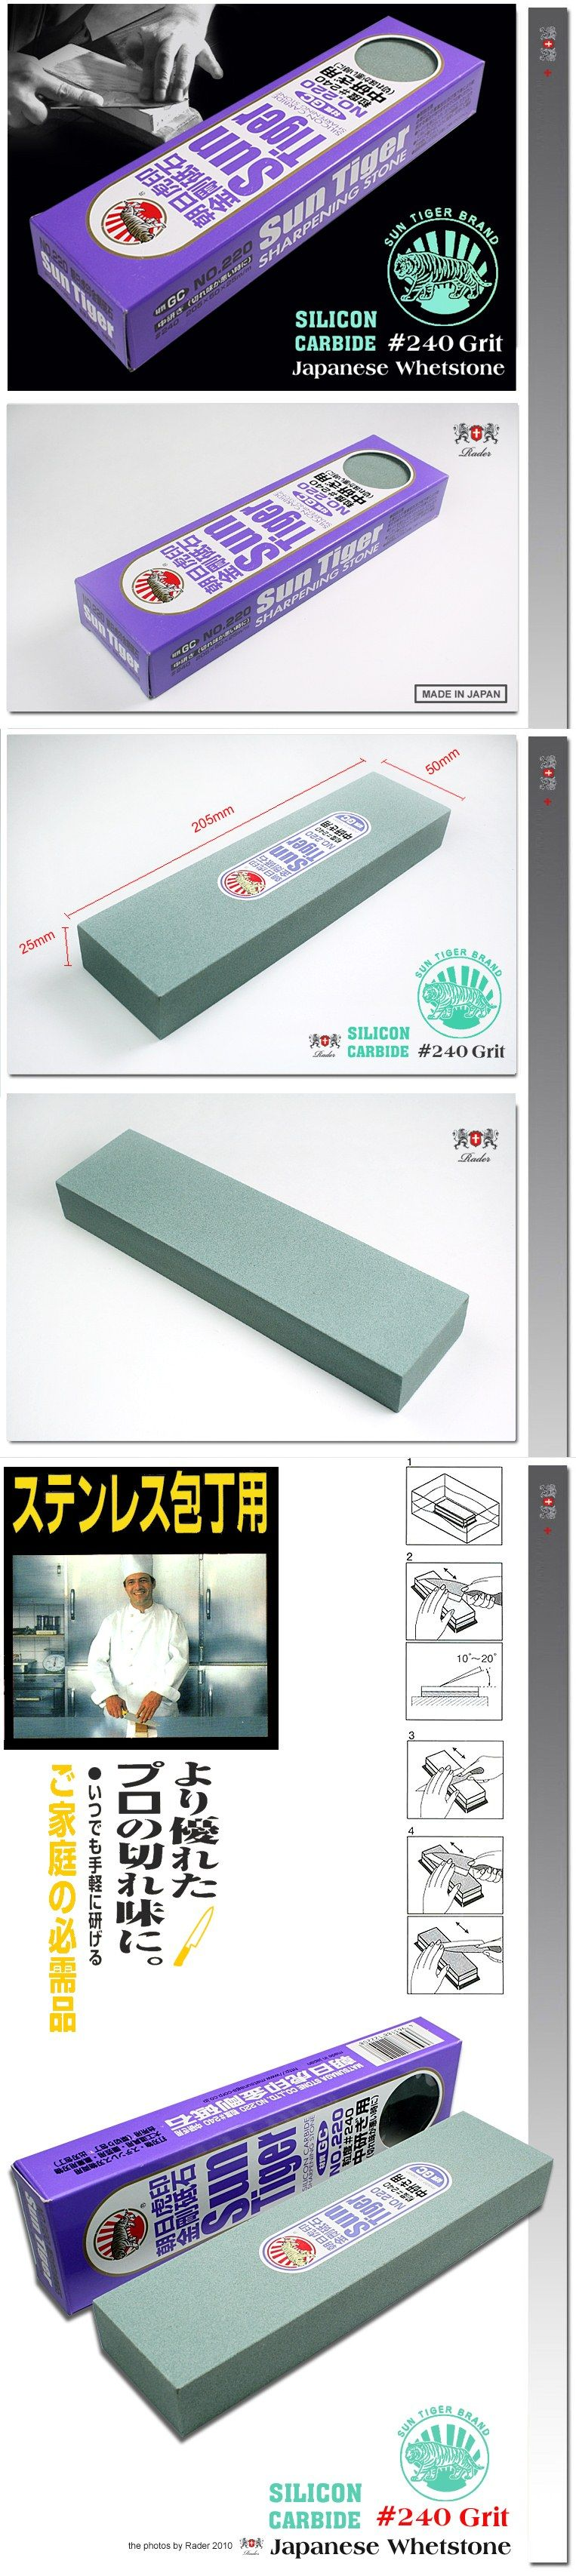 how to clean a silicone carbide sharpening stone